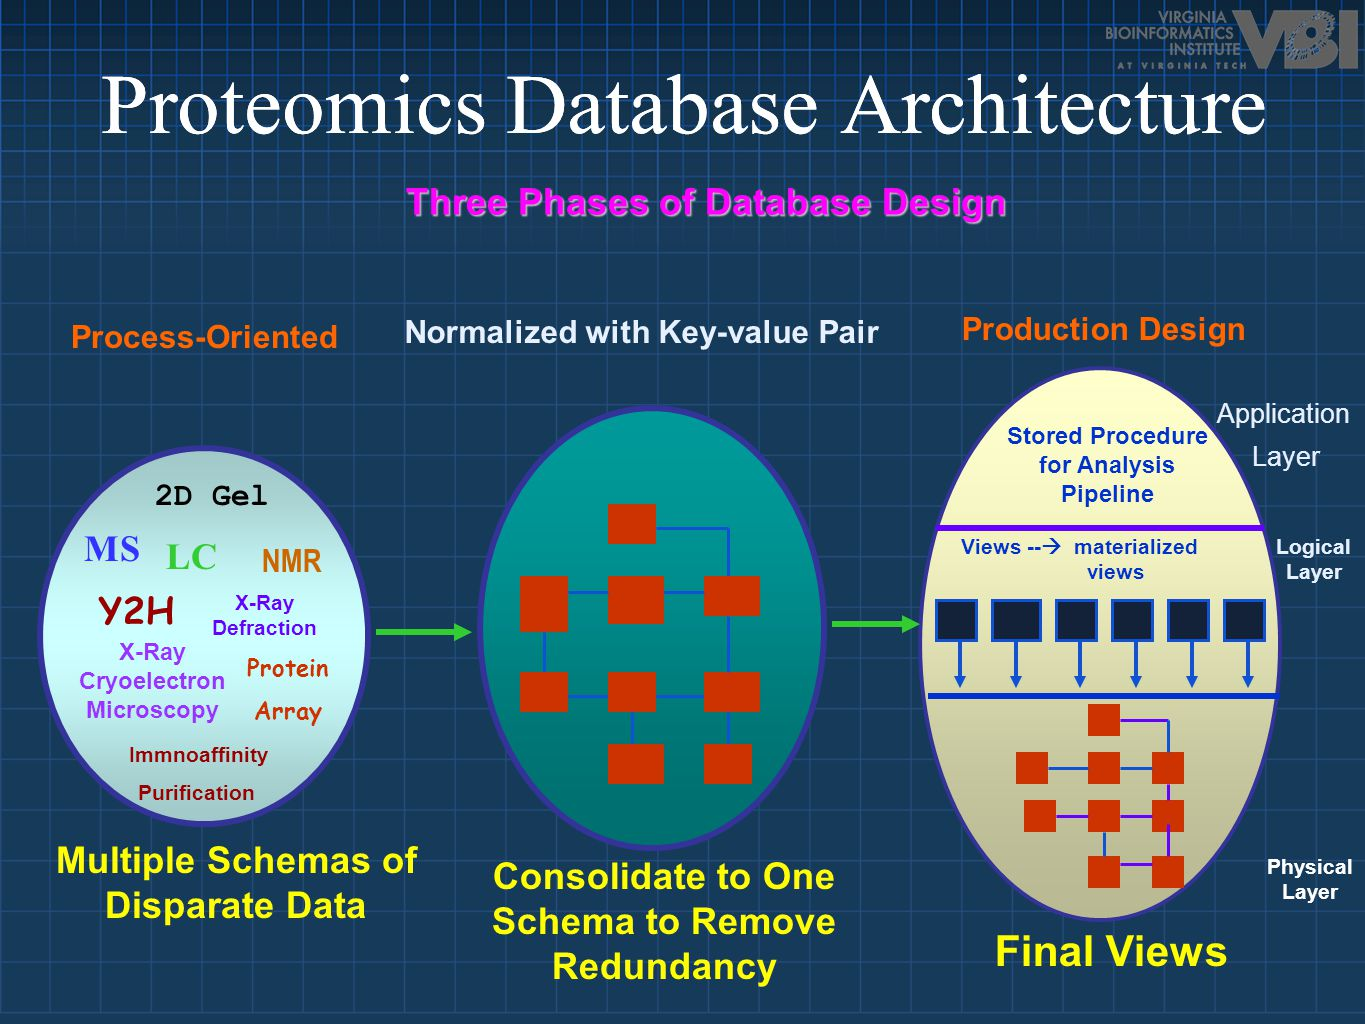 Proteomics Database Architecture Process-Oriented Production Design 2D Gel Y2H MS NMR Protein Array LC X-Ray Cryoelectron Microscopy Immnoaffinity Pur